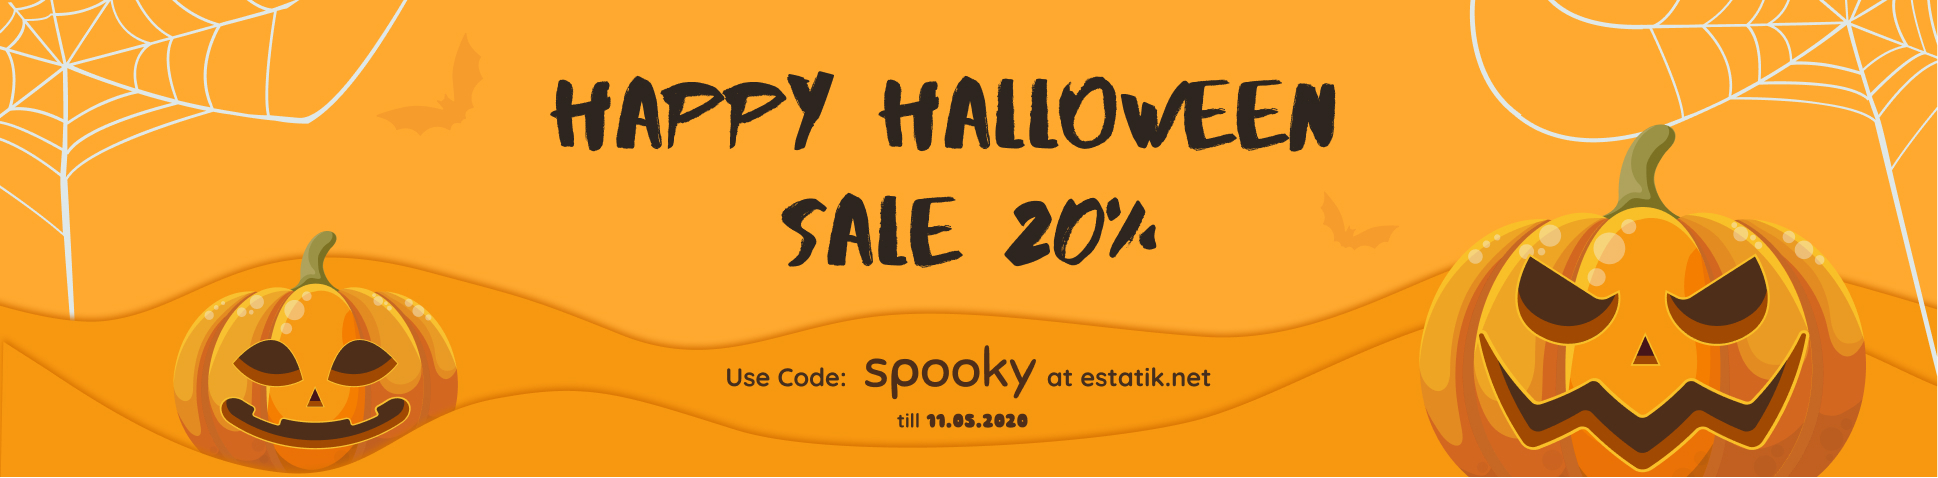 Estatik_halloween_sale_2020